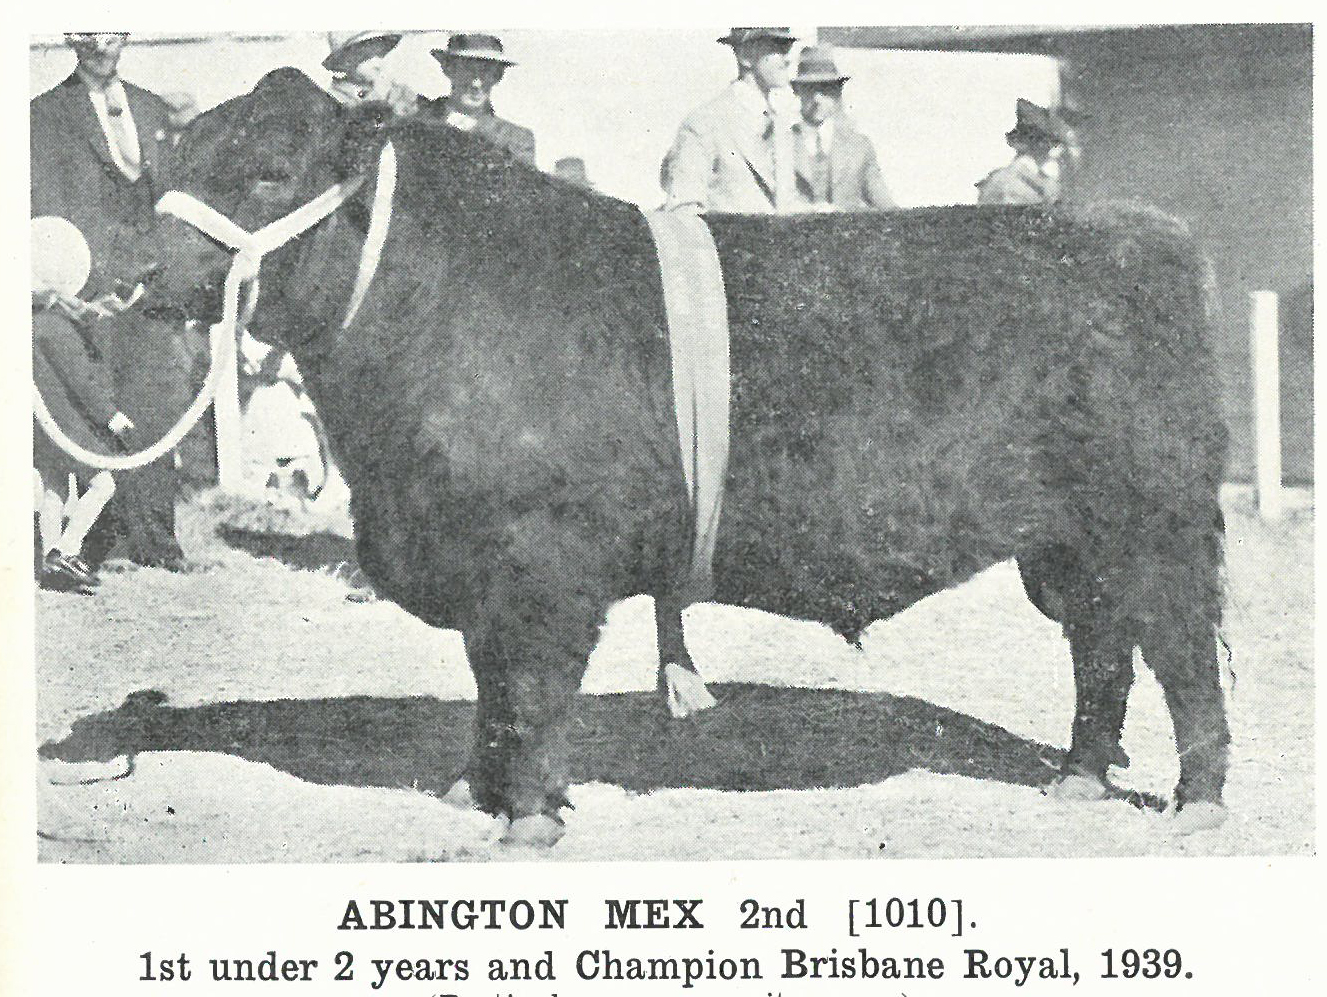 Abington Mex